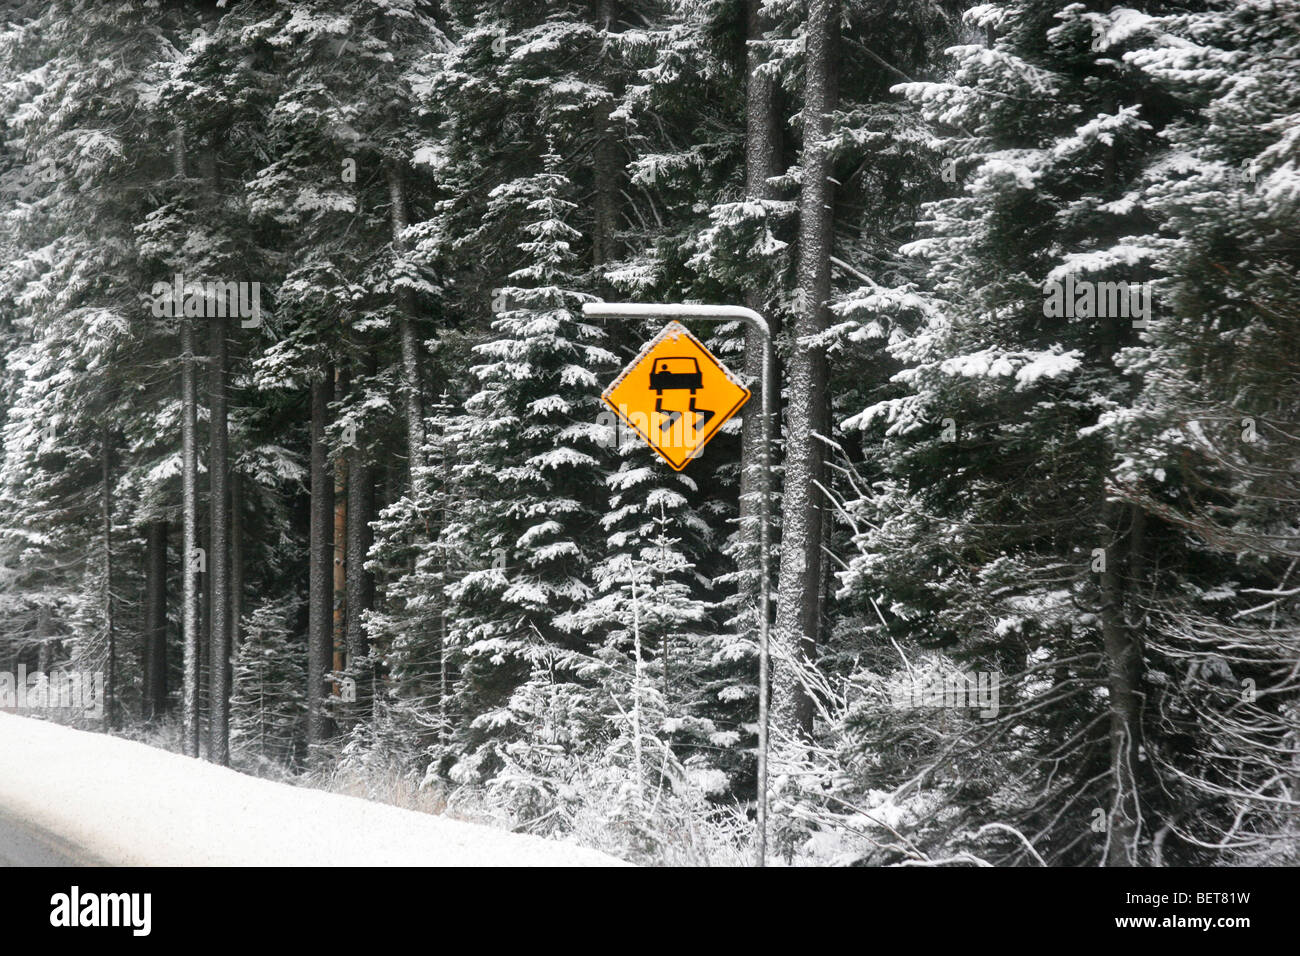 Road side sign shows slippery road ahead, Vancouver, British Columbia, Canada - Stock Image